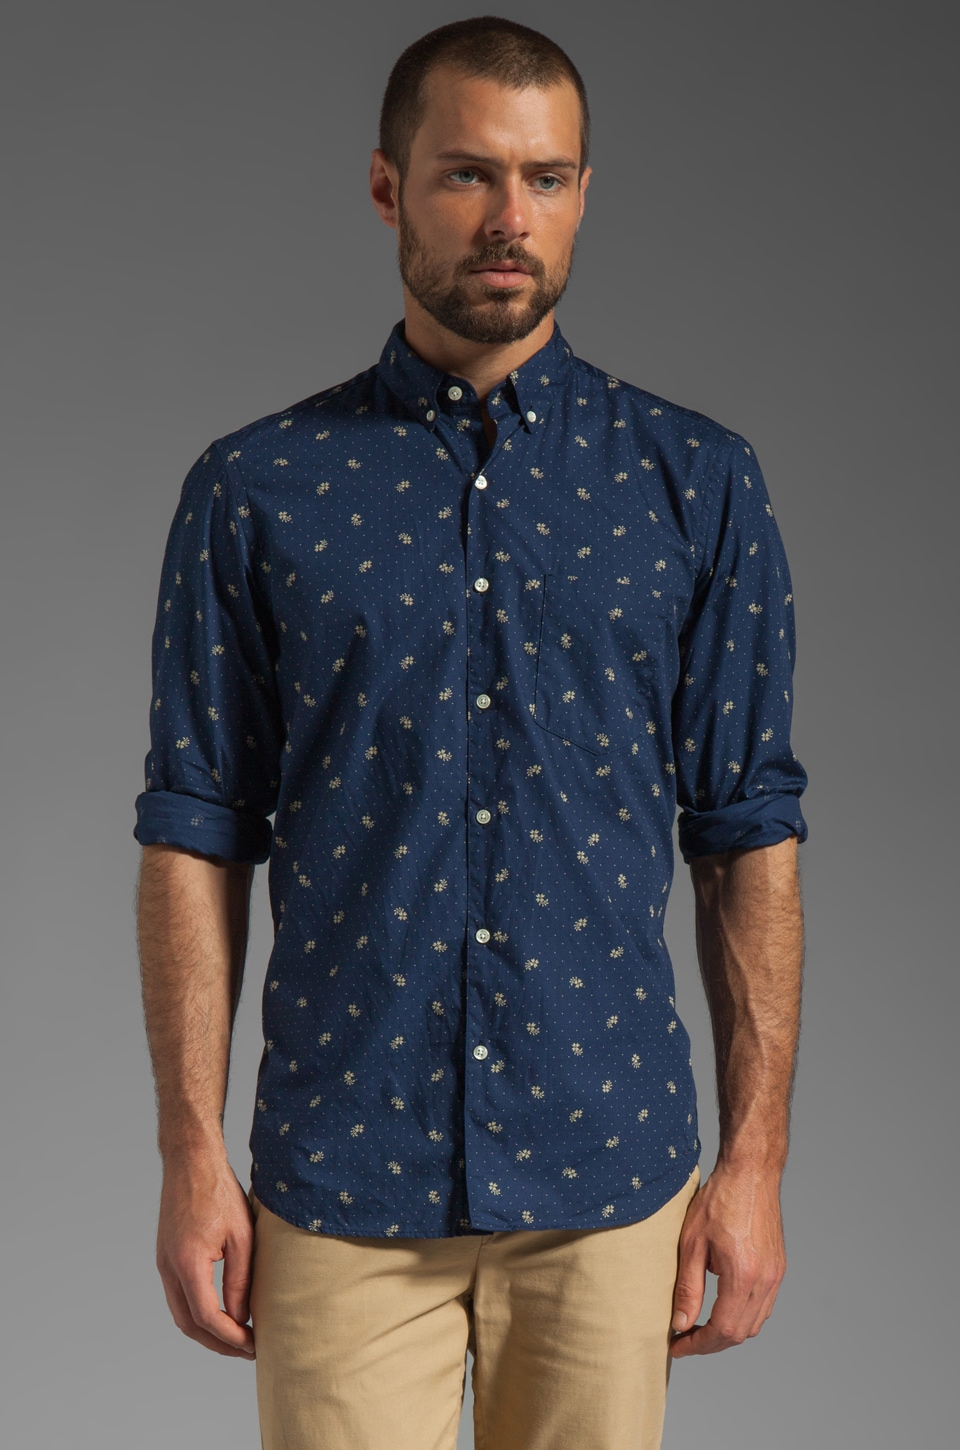 Steven Alan Single Needle Shirt in Floral Indigo